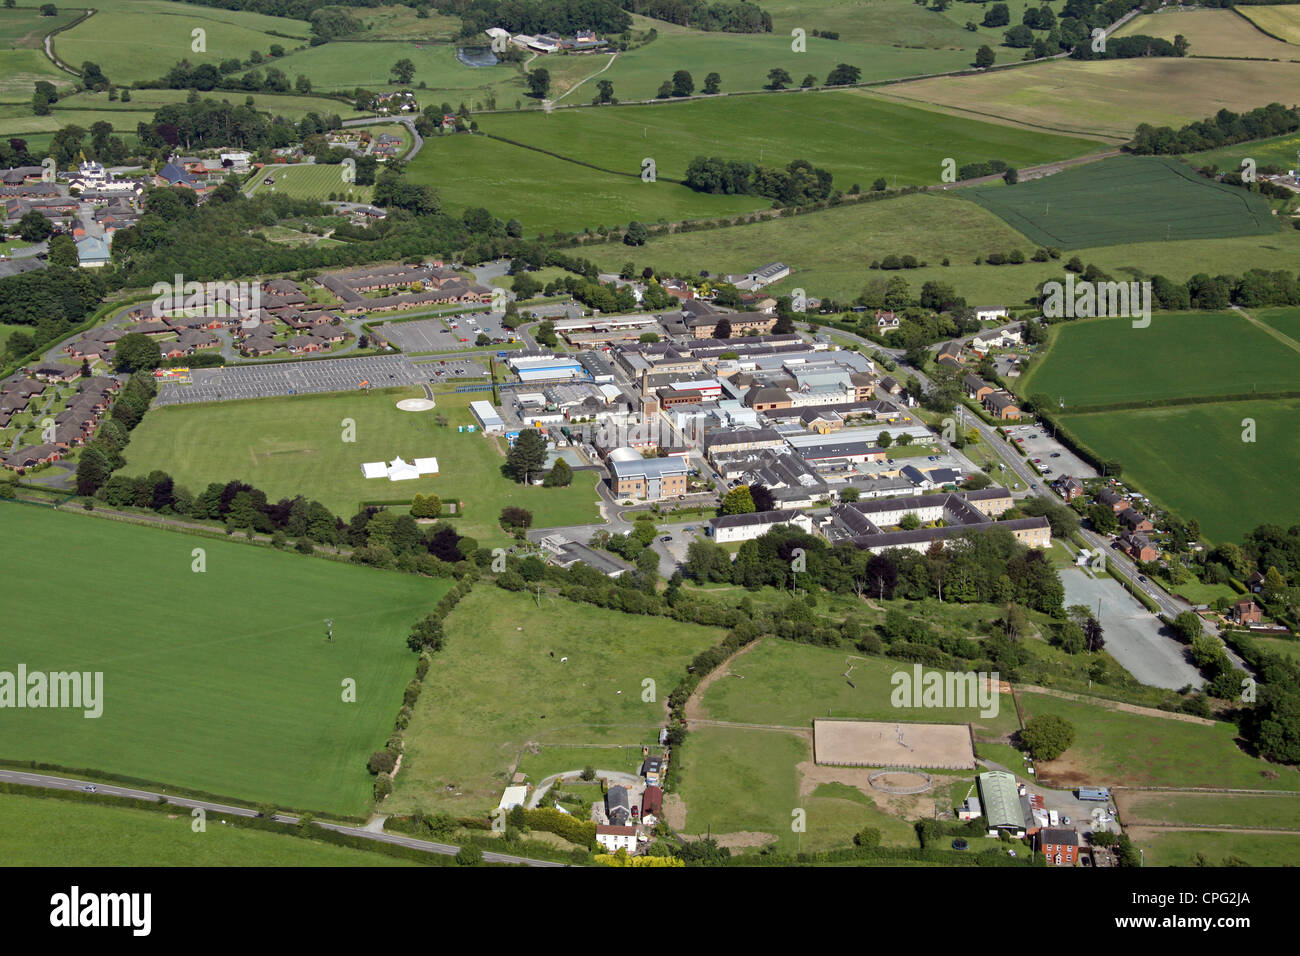 aerial view of Oswestry Hospital - Stock Image